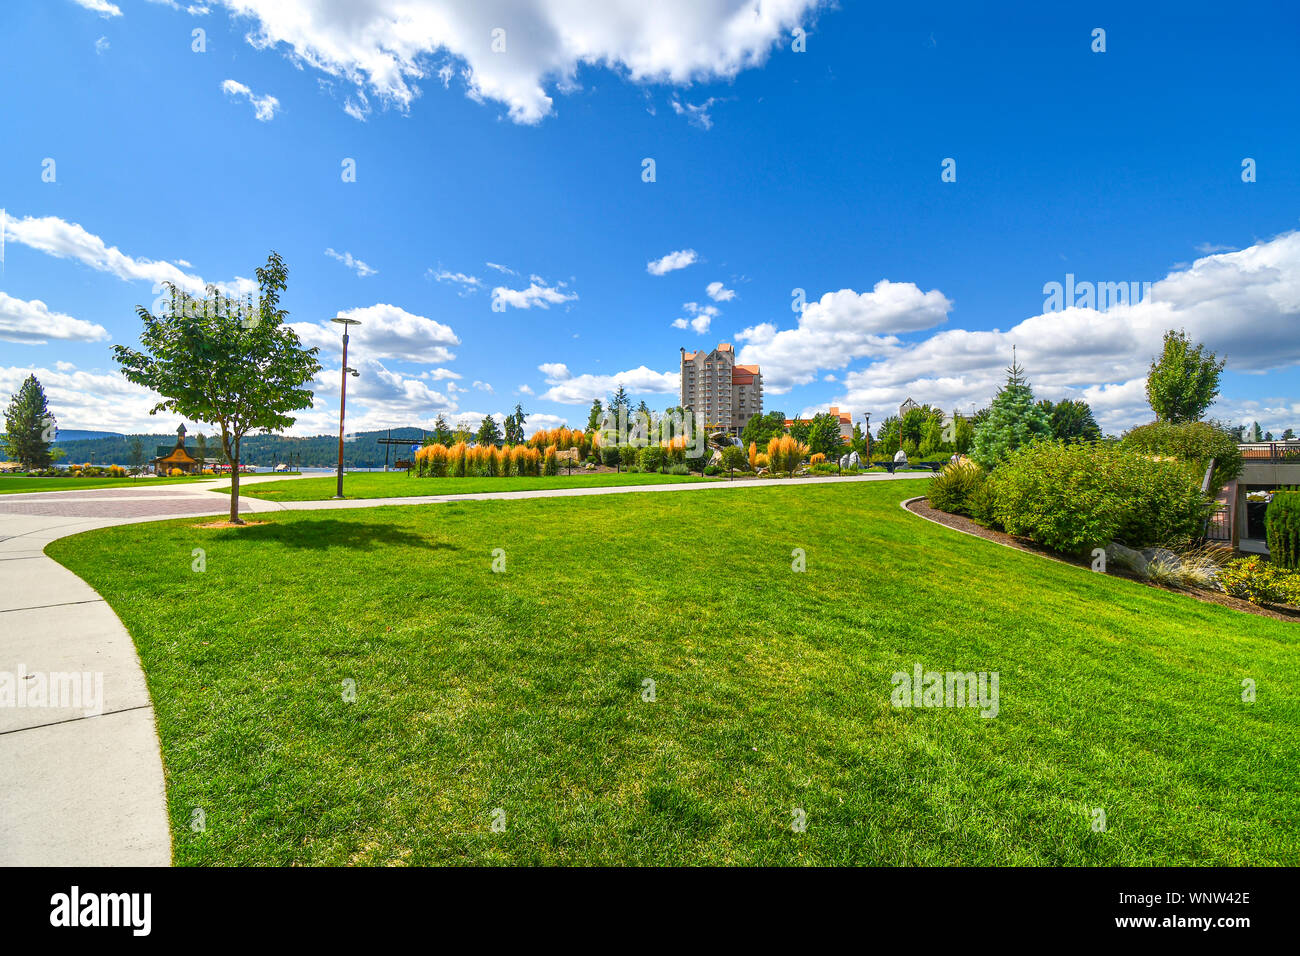 Summer day at the McEuen Park near resorts and Tubbs Hill in the lakefront town of Coeur d'Alene, Idaho. Stock Photo